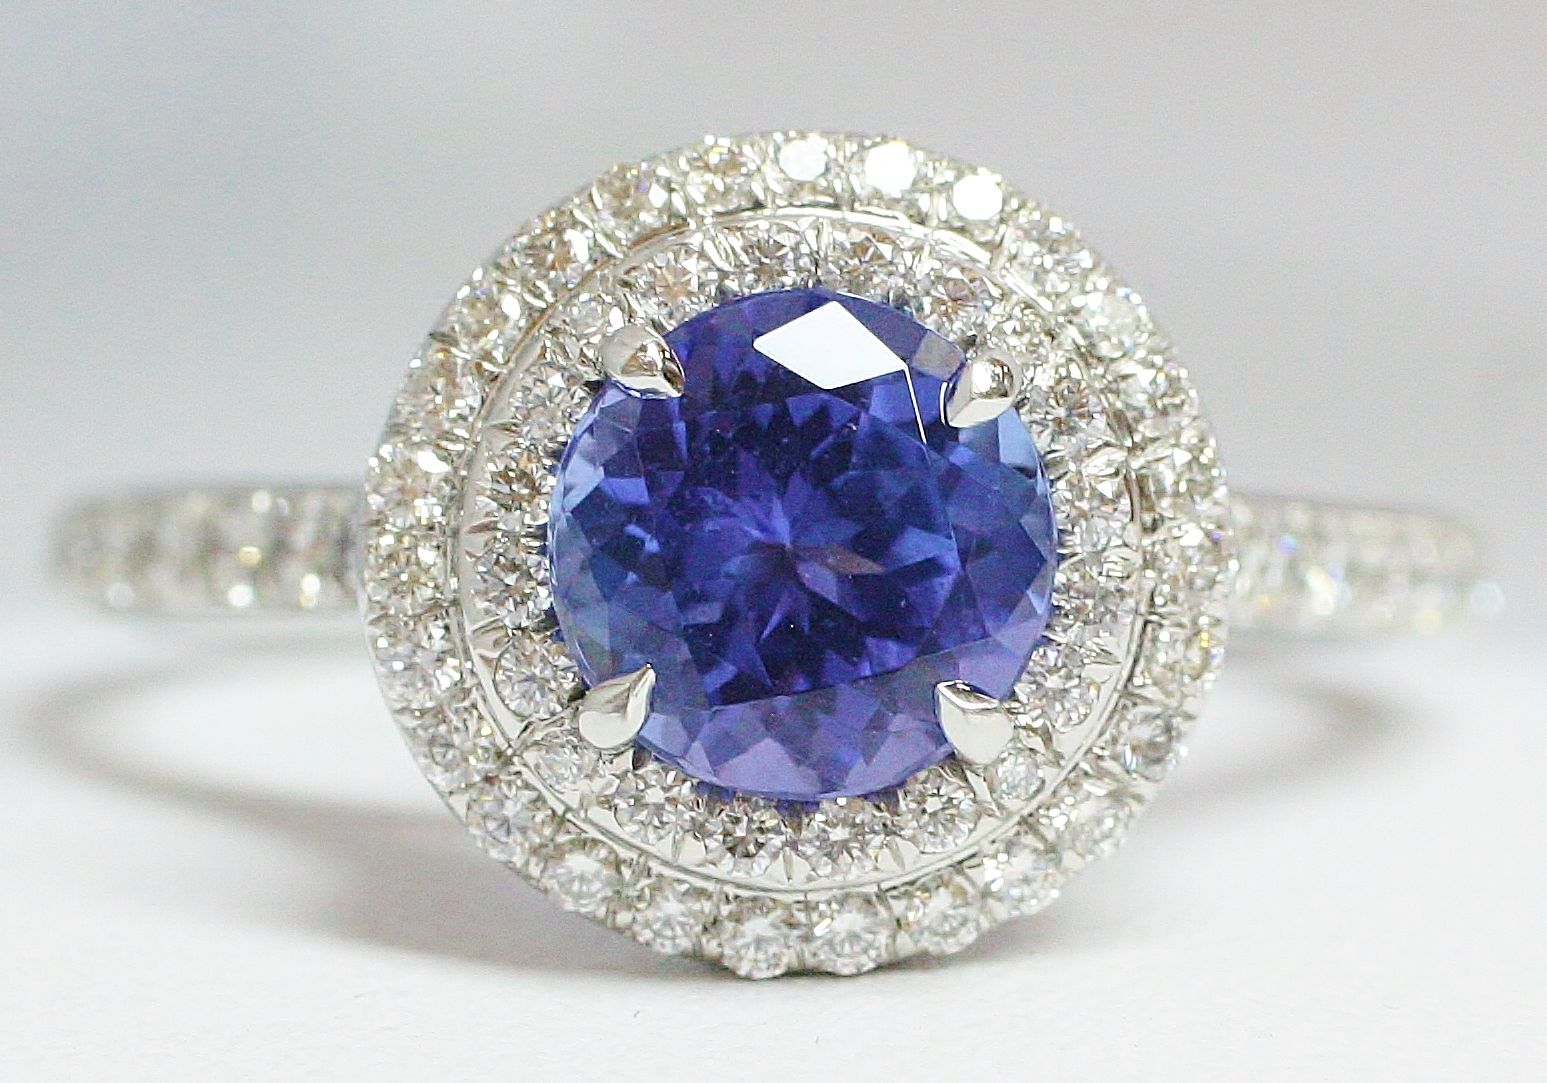 Tiffany Tanzanite Ring